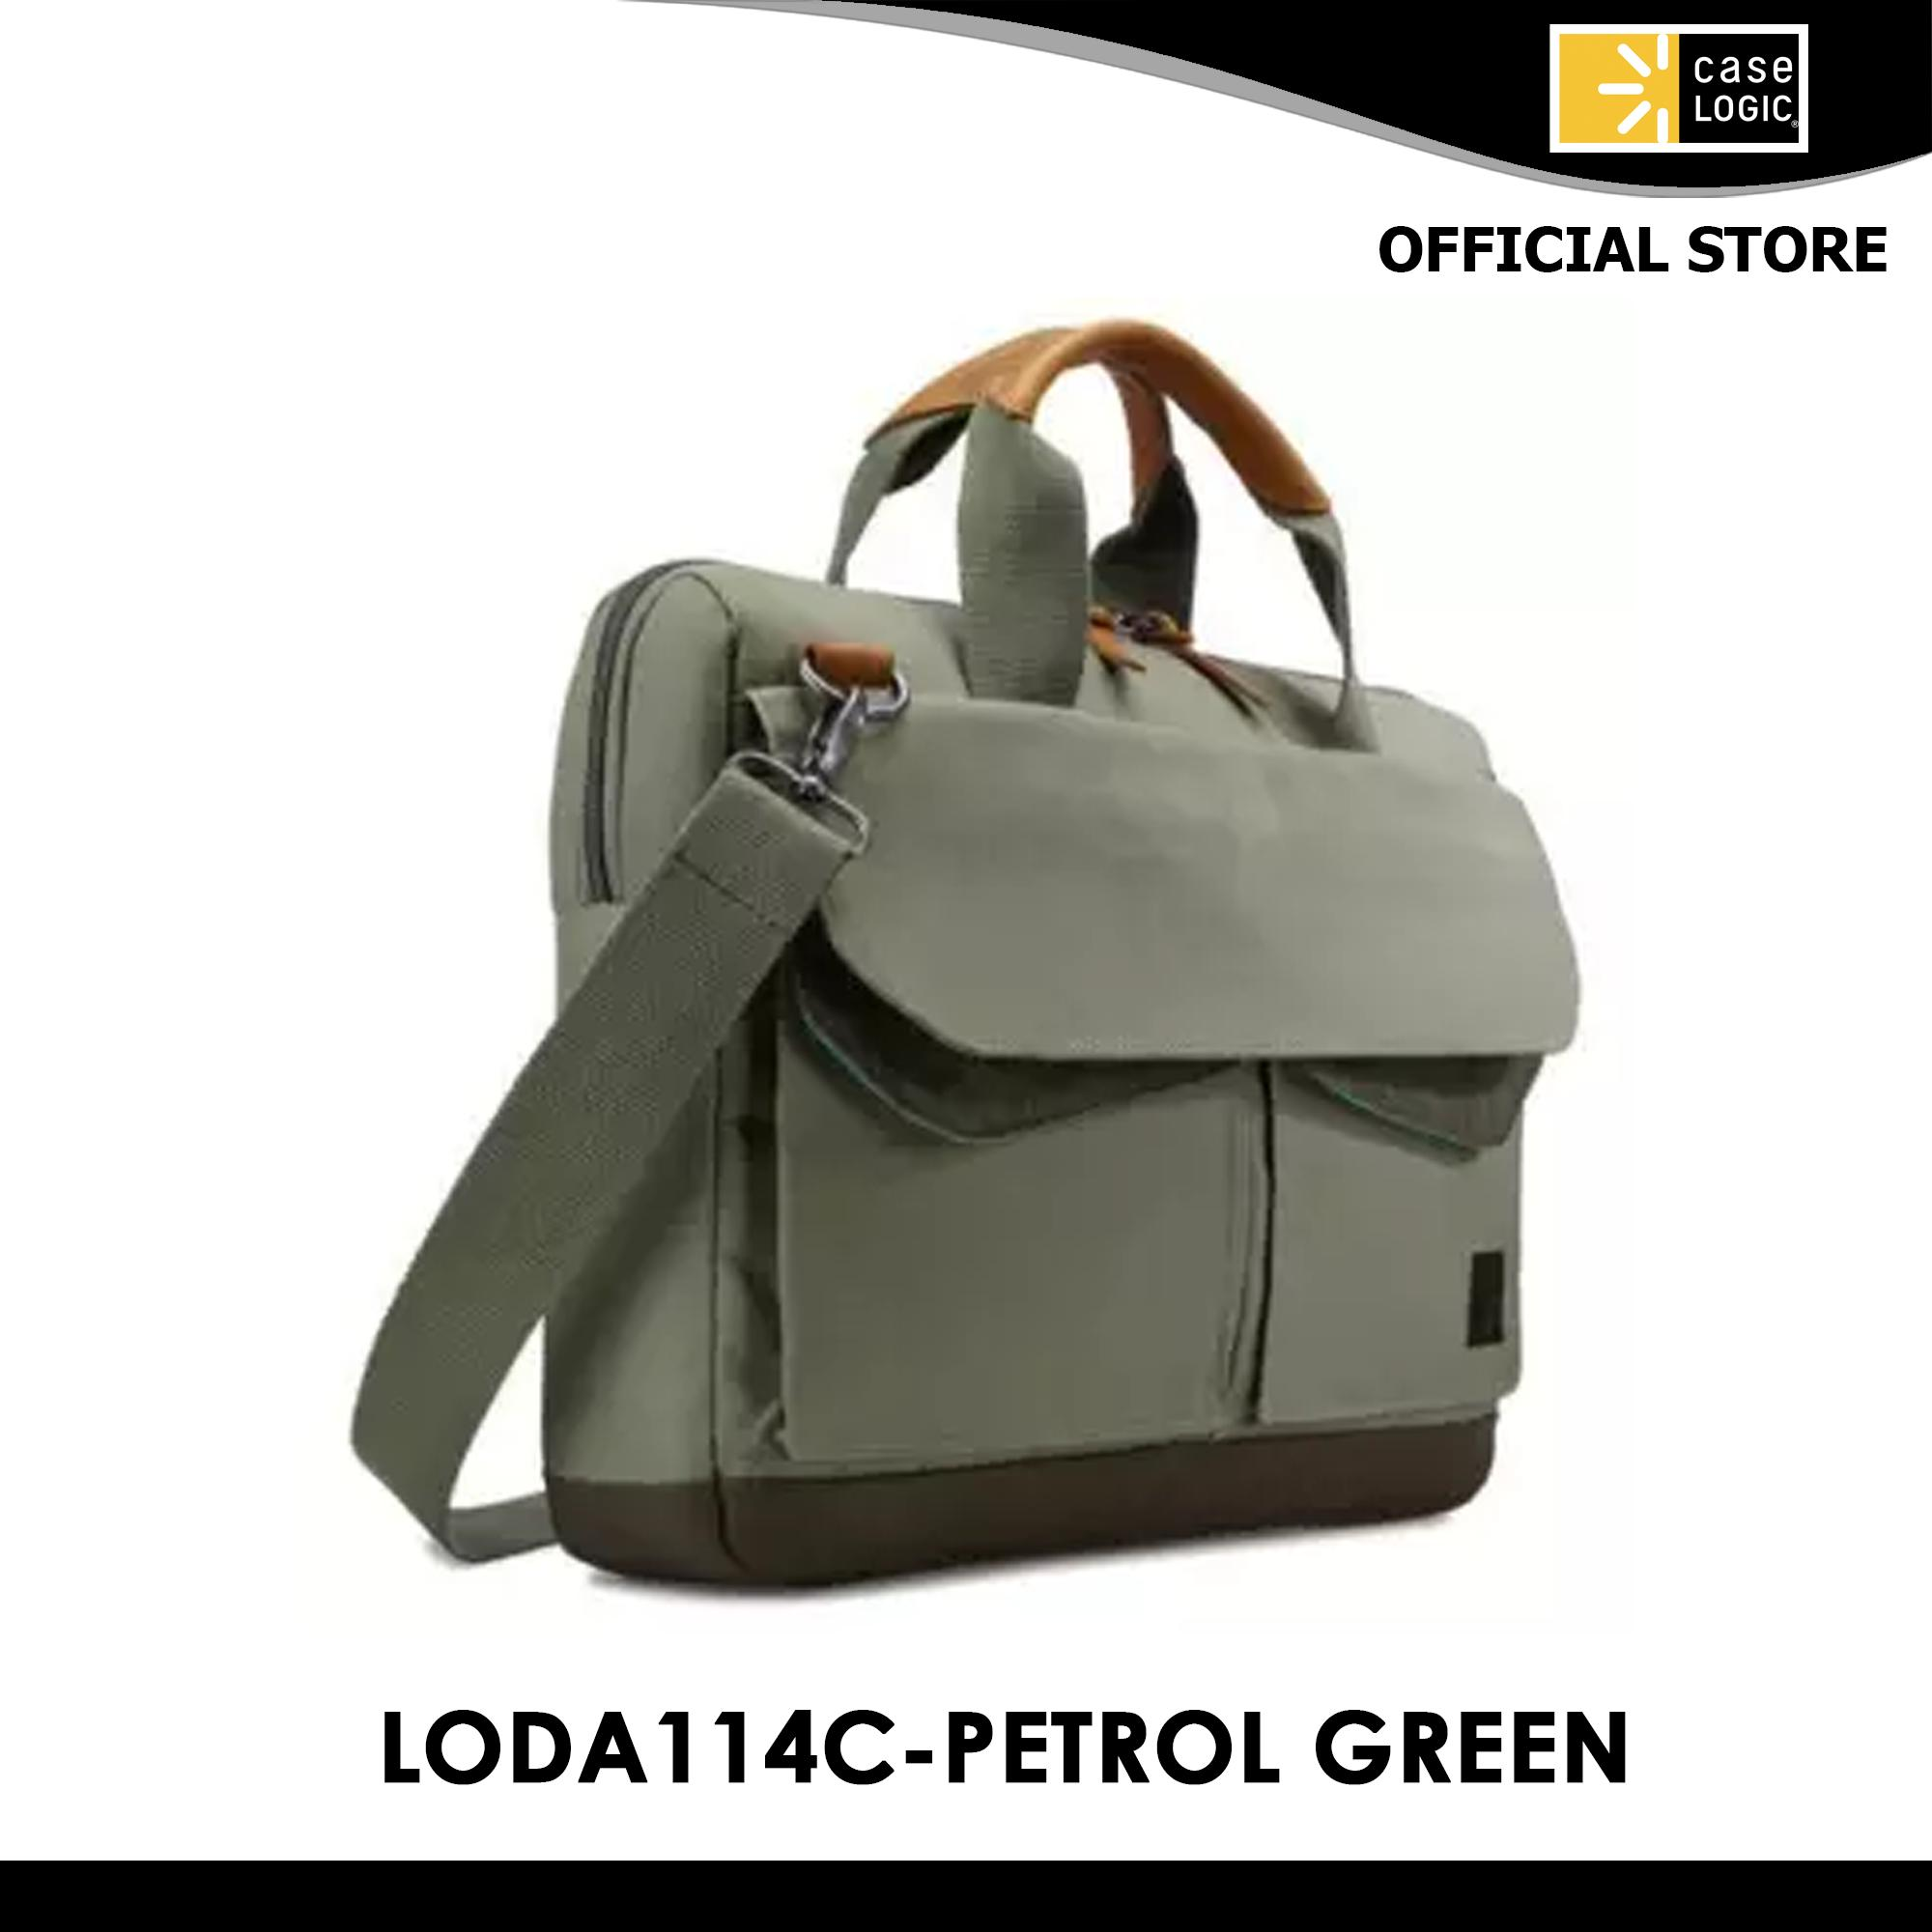 afdfdeda203d Case Logic Philippines - Case Logic Laptop Bags for sale - prices ...